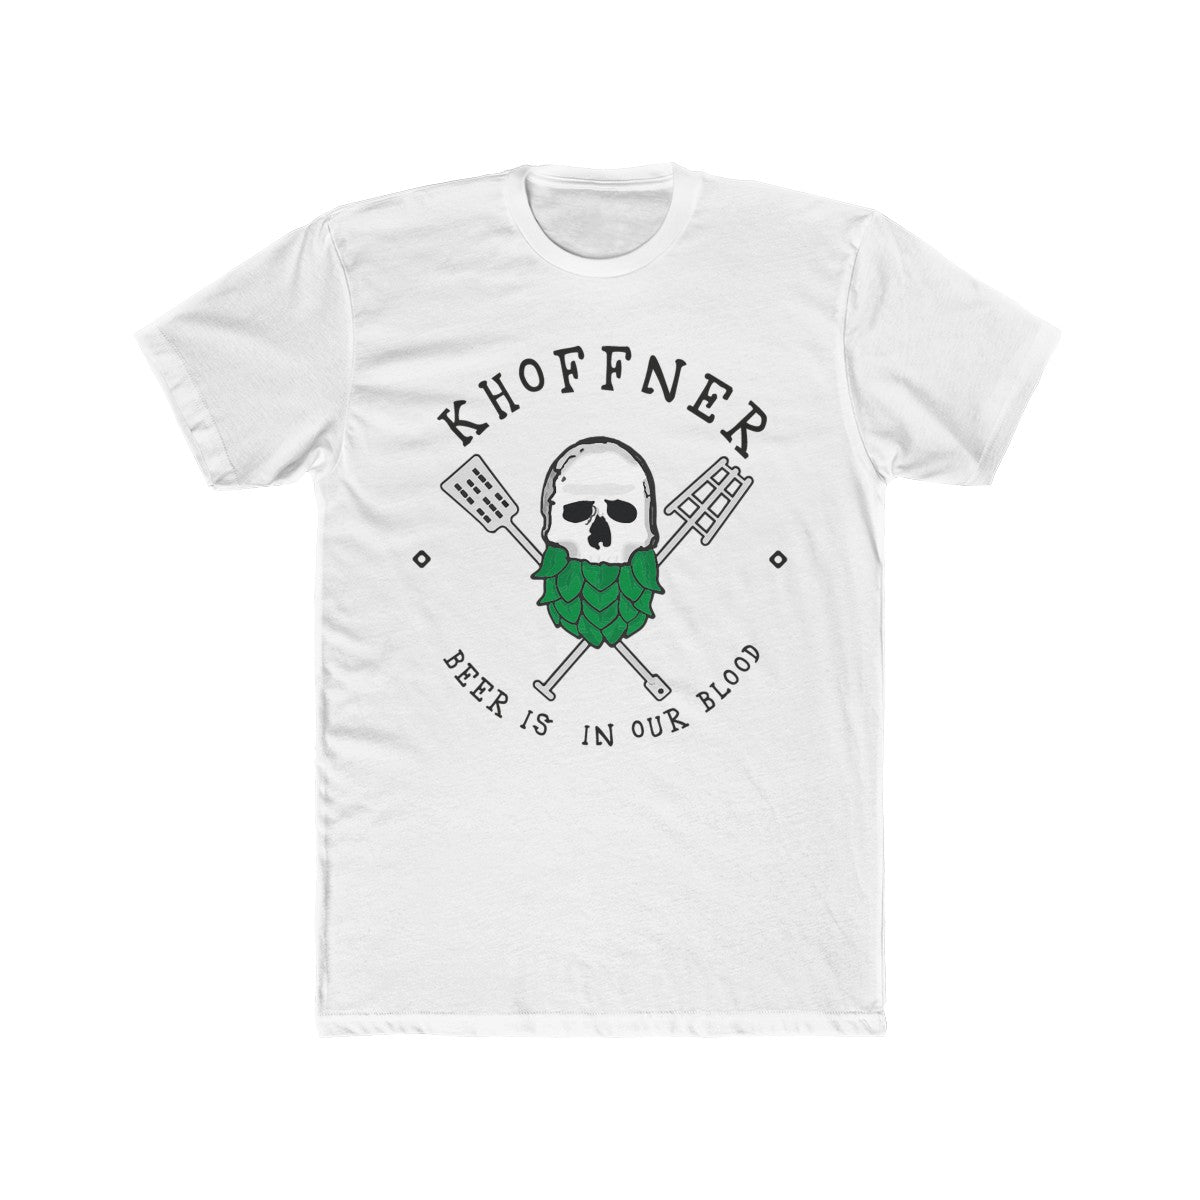 Khoffner Brewery Beer Is In Our Blood - Skull T-Shirt